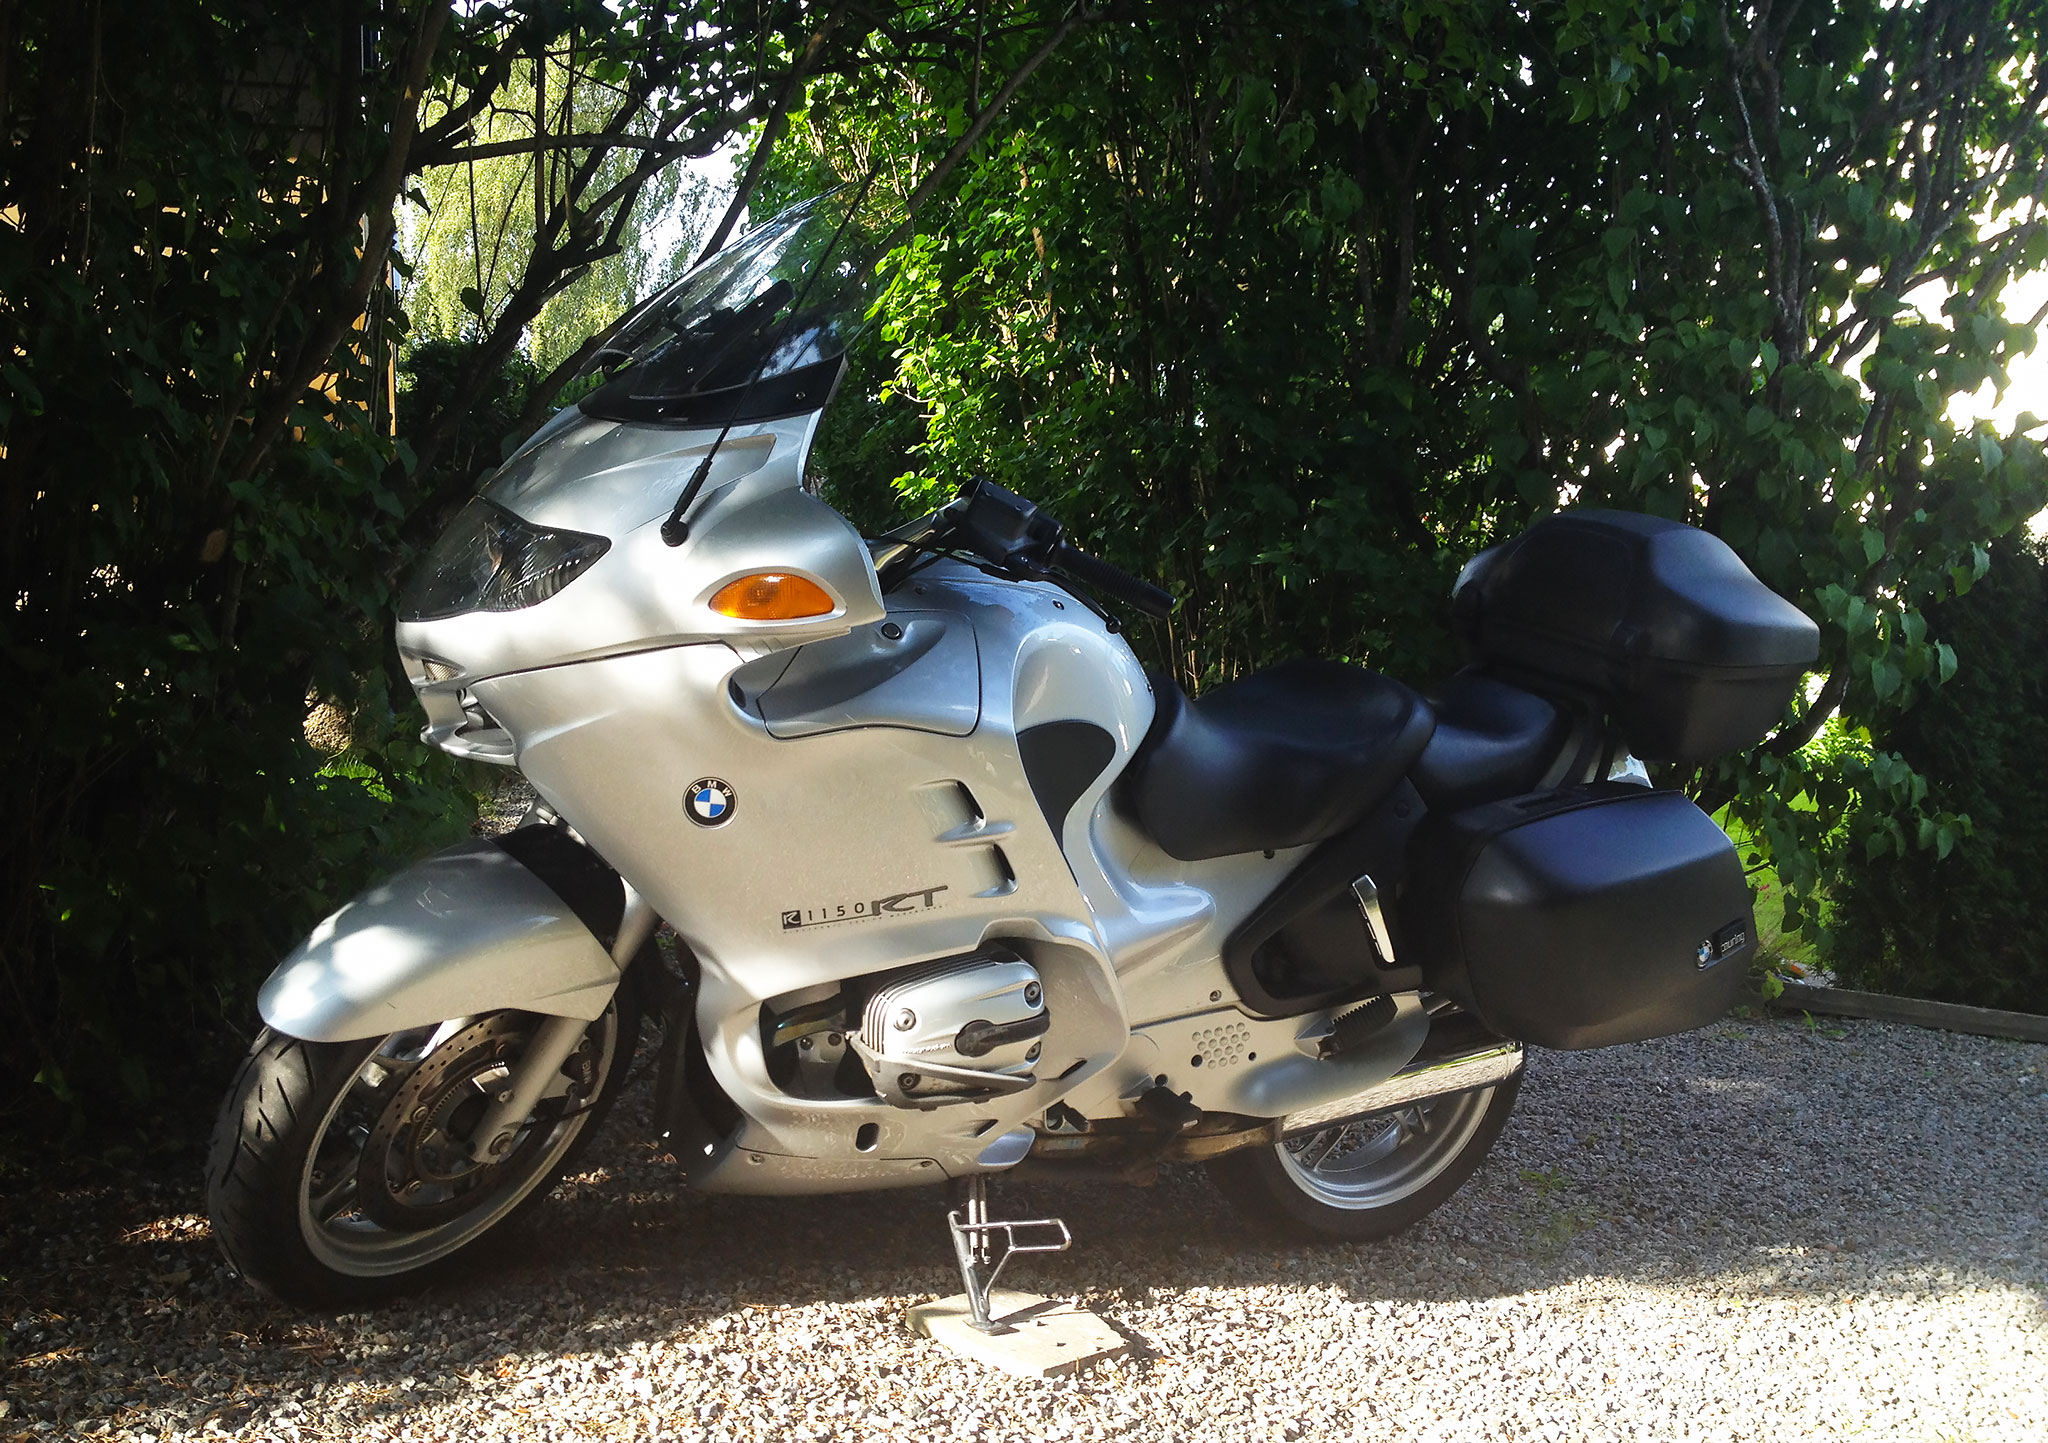 Motorcycles: BMW R1150RT 2003